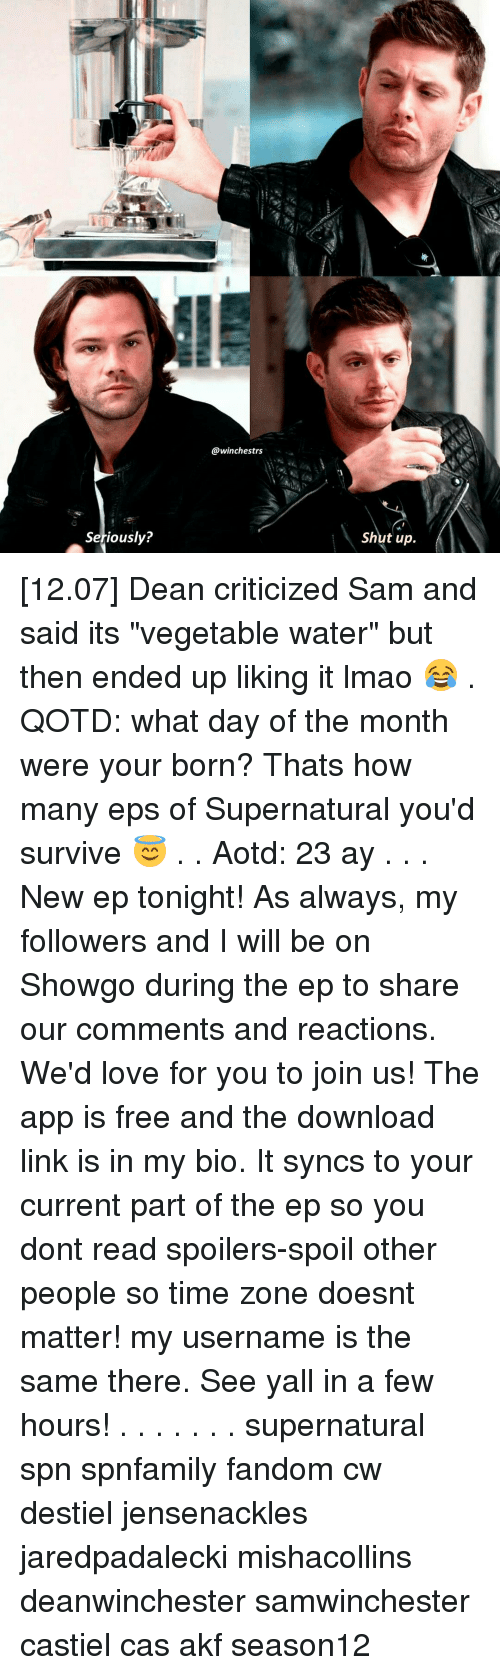 "survivalism: Seriously?  @winchestrs  Shut up [12.07] Dean criticized Sam and said its ""vegetable water"" but then ended up liking it lmao 😂 . QOTD: what day of the month were your born? Thats how many eps of Supernatural you'd survive 😇 . . Aotd: 23 ay . . . New ep tonight! As always, my followers and I will be on Showgo during the ep to share our comments and reactions. We'd love for you to join us! The app is free and the download link is in my bio. It syncs to your current part of the ep so you dont read spoilers-spoil other people so time zone doesnt matter!♡ my username is the same there. See yall in a few hours! . . . . . . . supernatural spn spnfamily fandom cw destiel jensenackles jaredpadalecki mishacollins deanwinchester samwinchester castiel cas akf season12"